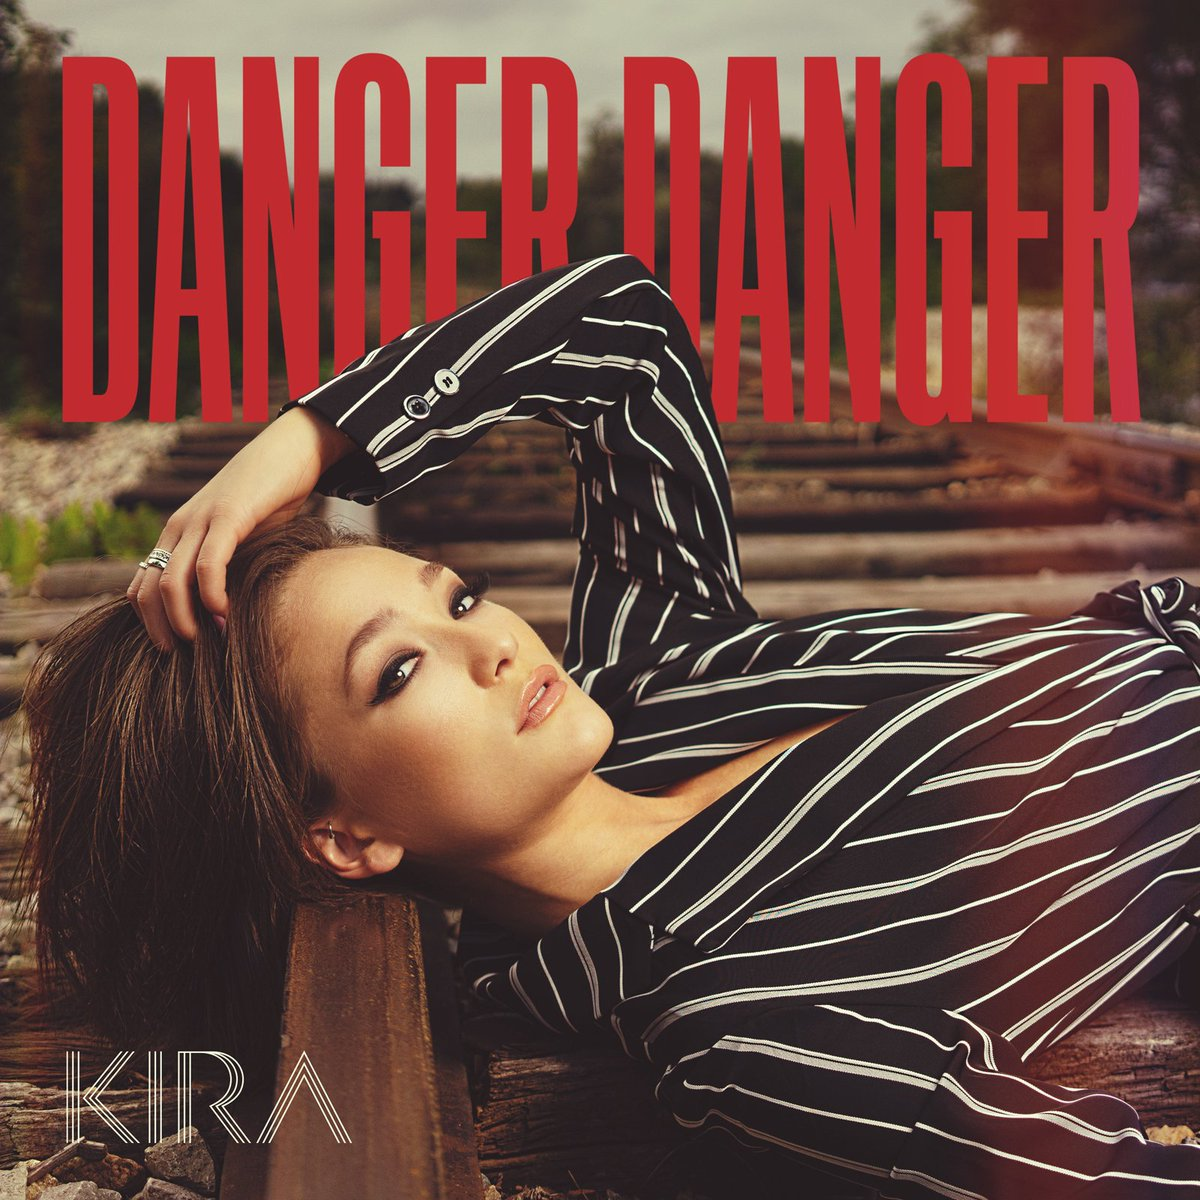 TODAY IS THE DAY!  Danger Danger is available on all music platforms. Happy Friday! #DangerDanger #NewMusicFriday <br>http://pic.twitter.com/s3kdC6WCEX